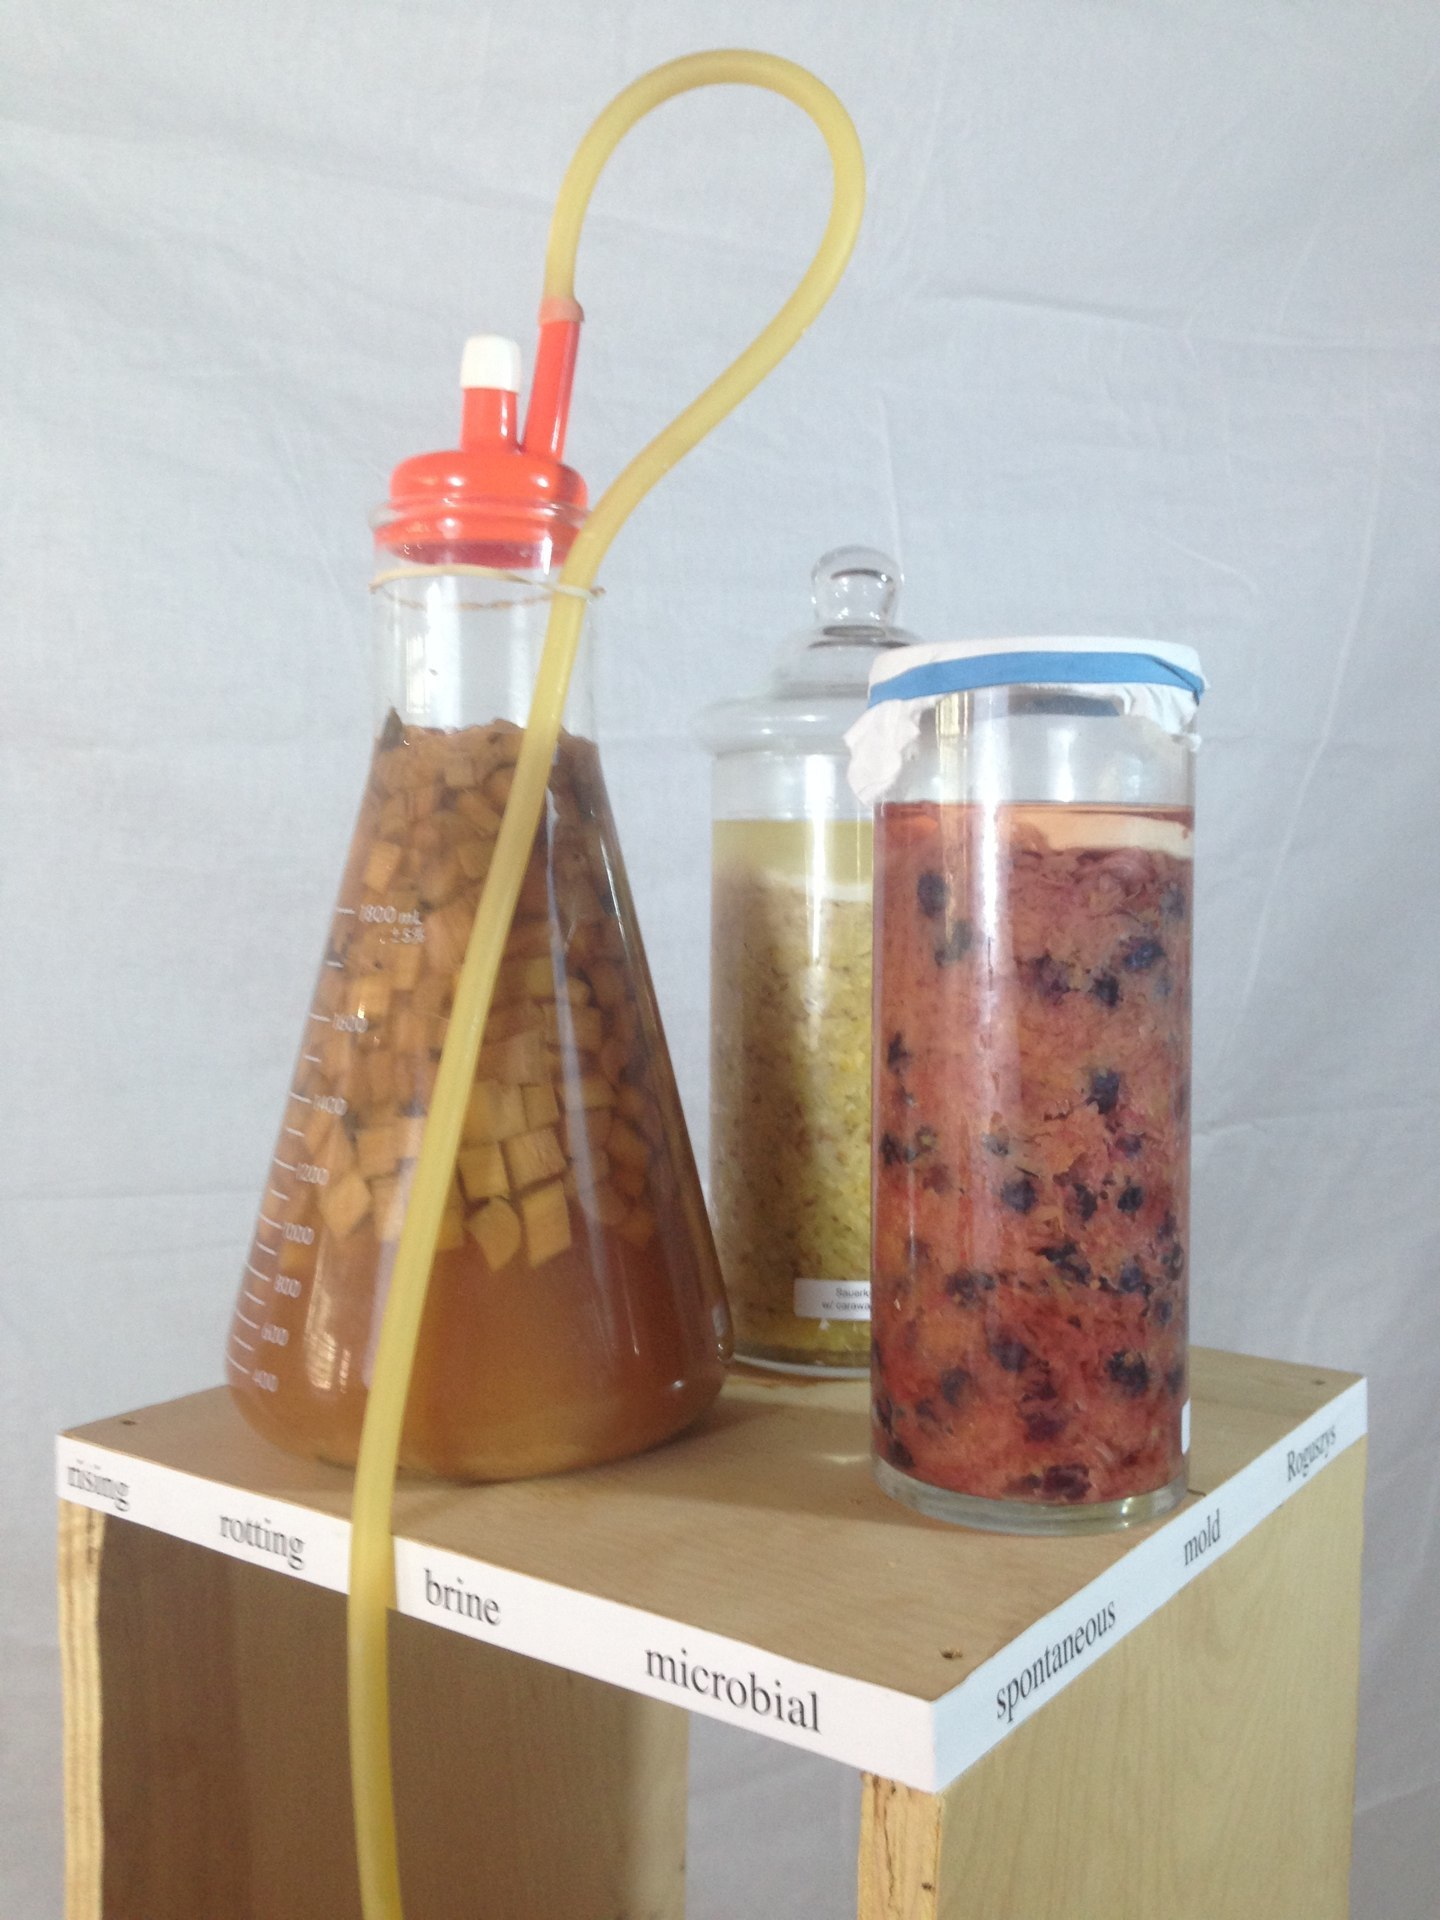 Axle Fermentation laboratory